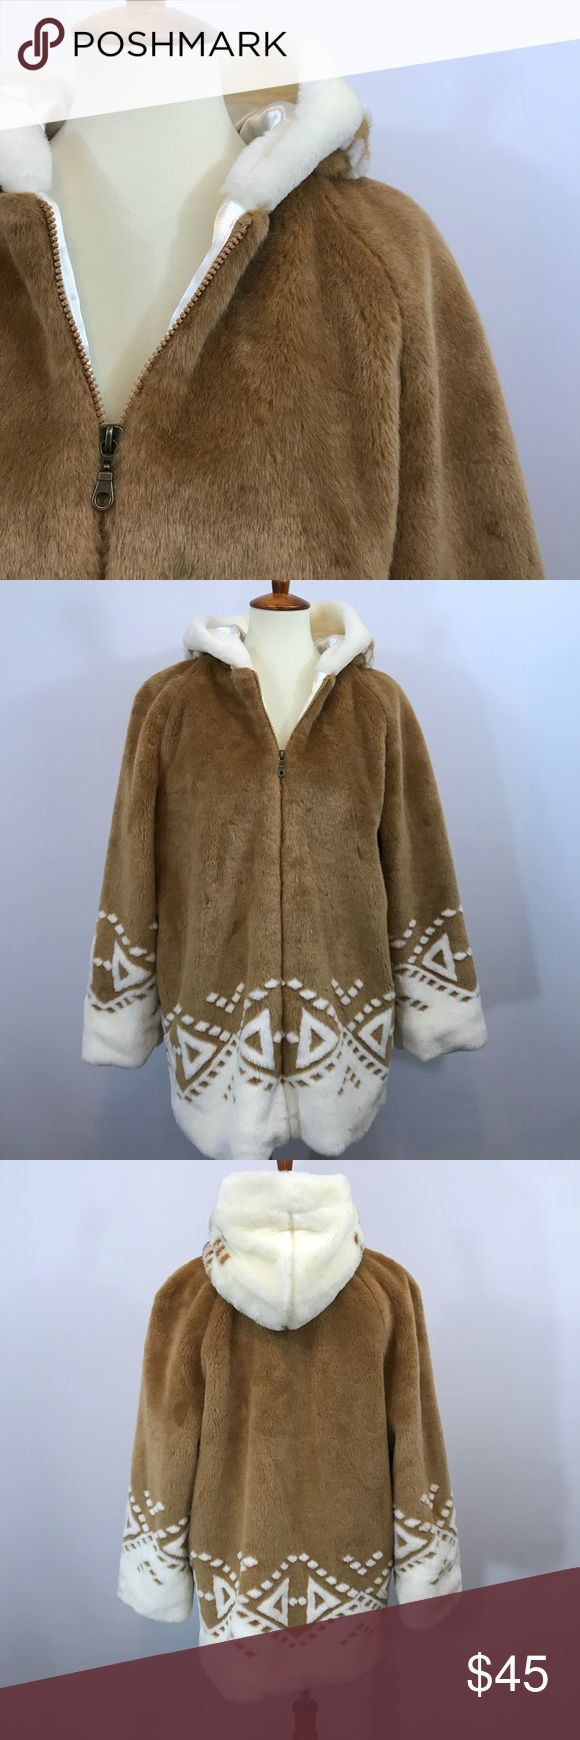 """Thunder Valley Casino Coat Hooded faux fur coat with hood. Fully lined. Embroidered with, Thunder Valley Casino and Resort"""" on the upper back. Excellent preowned condition.   Sleeve is 22"""" PTP is 24"""" Length is 30"""" Lake Matley Jackets & Coats"""